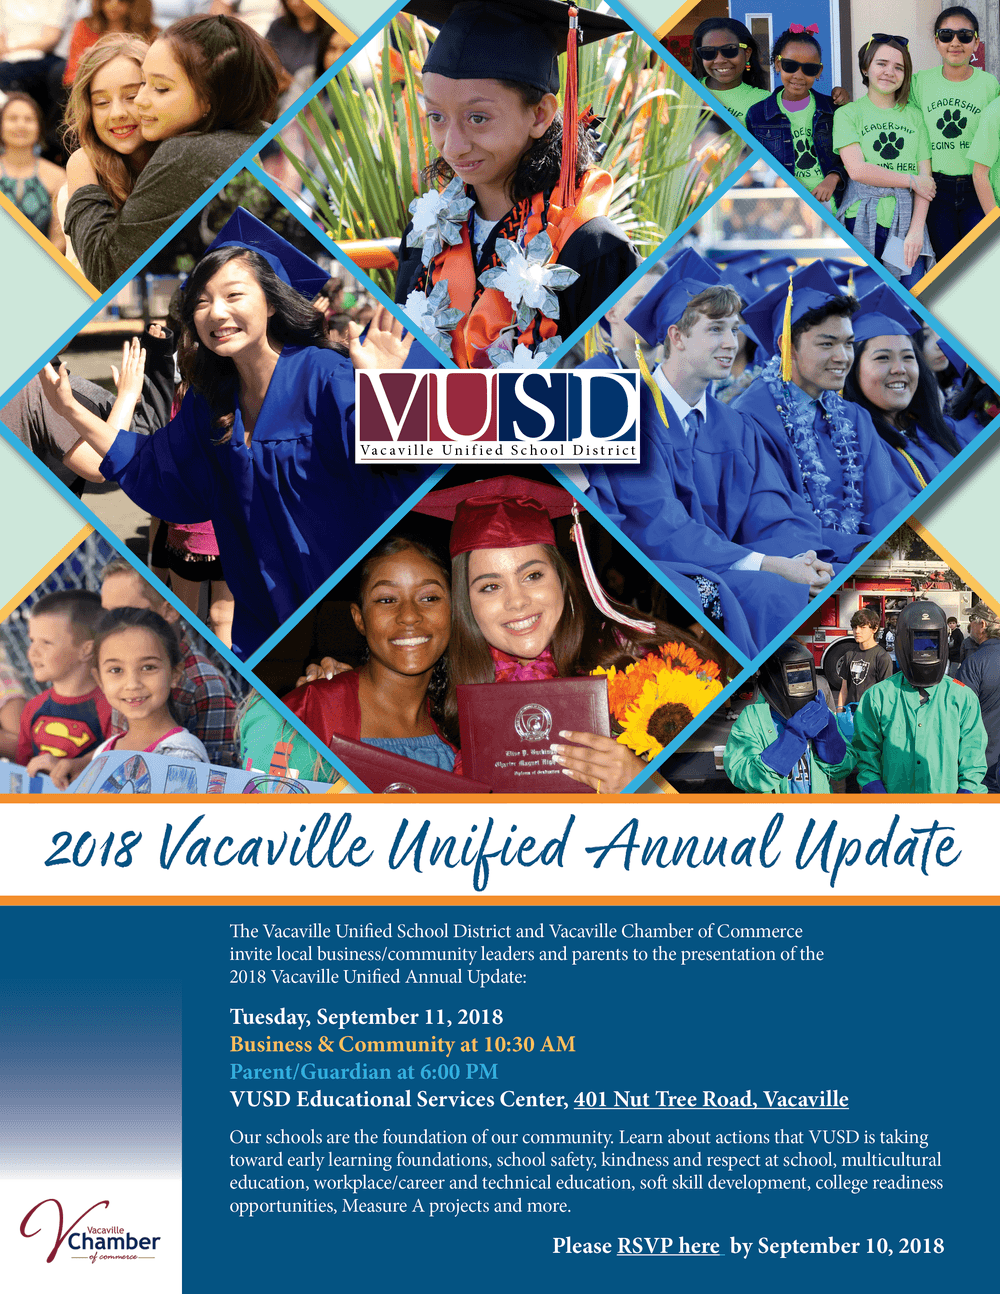 VUSD Annual update preview